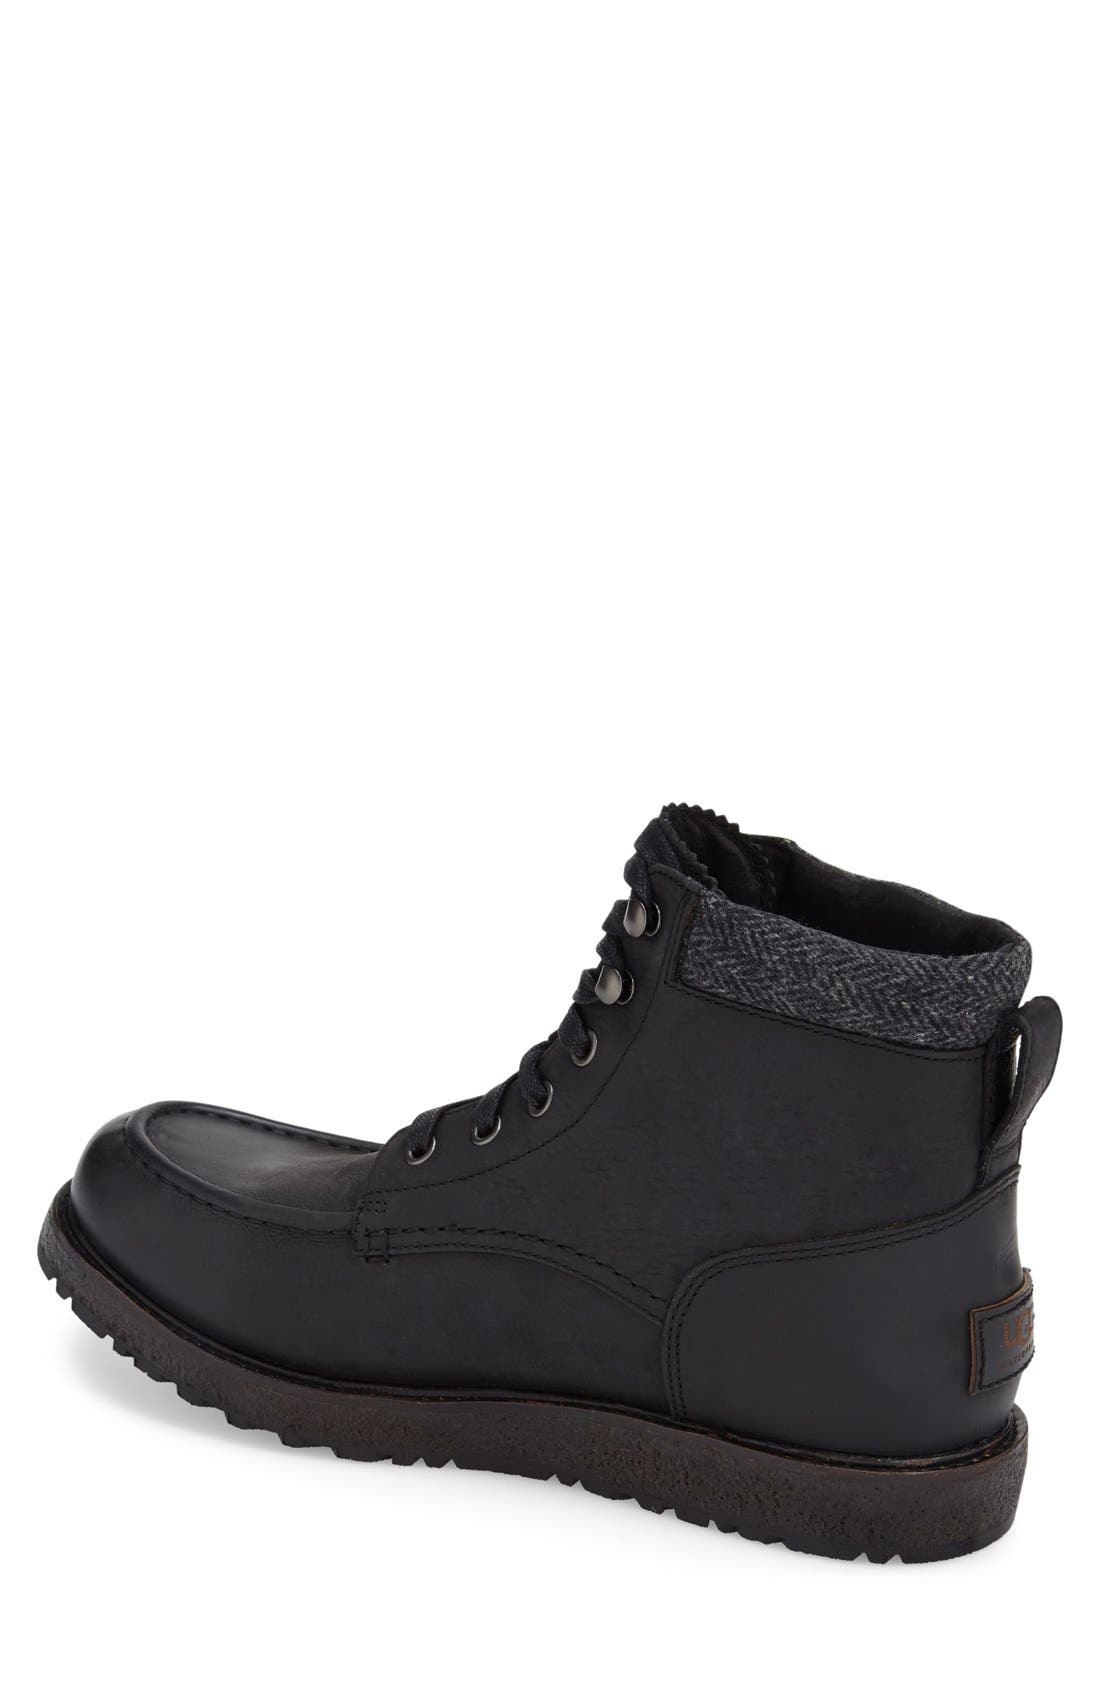 Alternate Image 2  - UGG® Merrick Moc Toe Boot (Men)